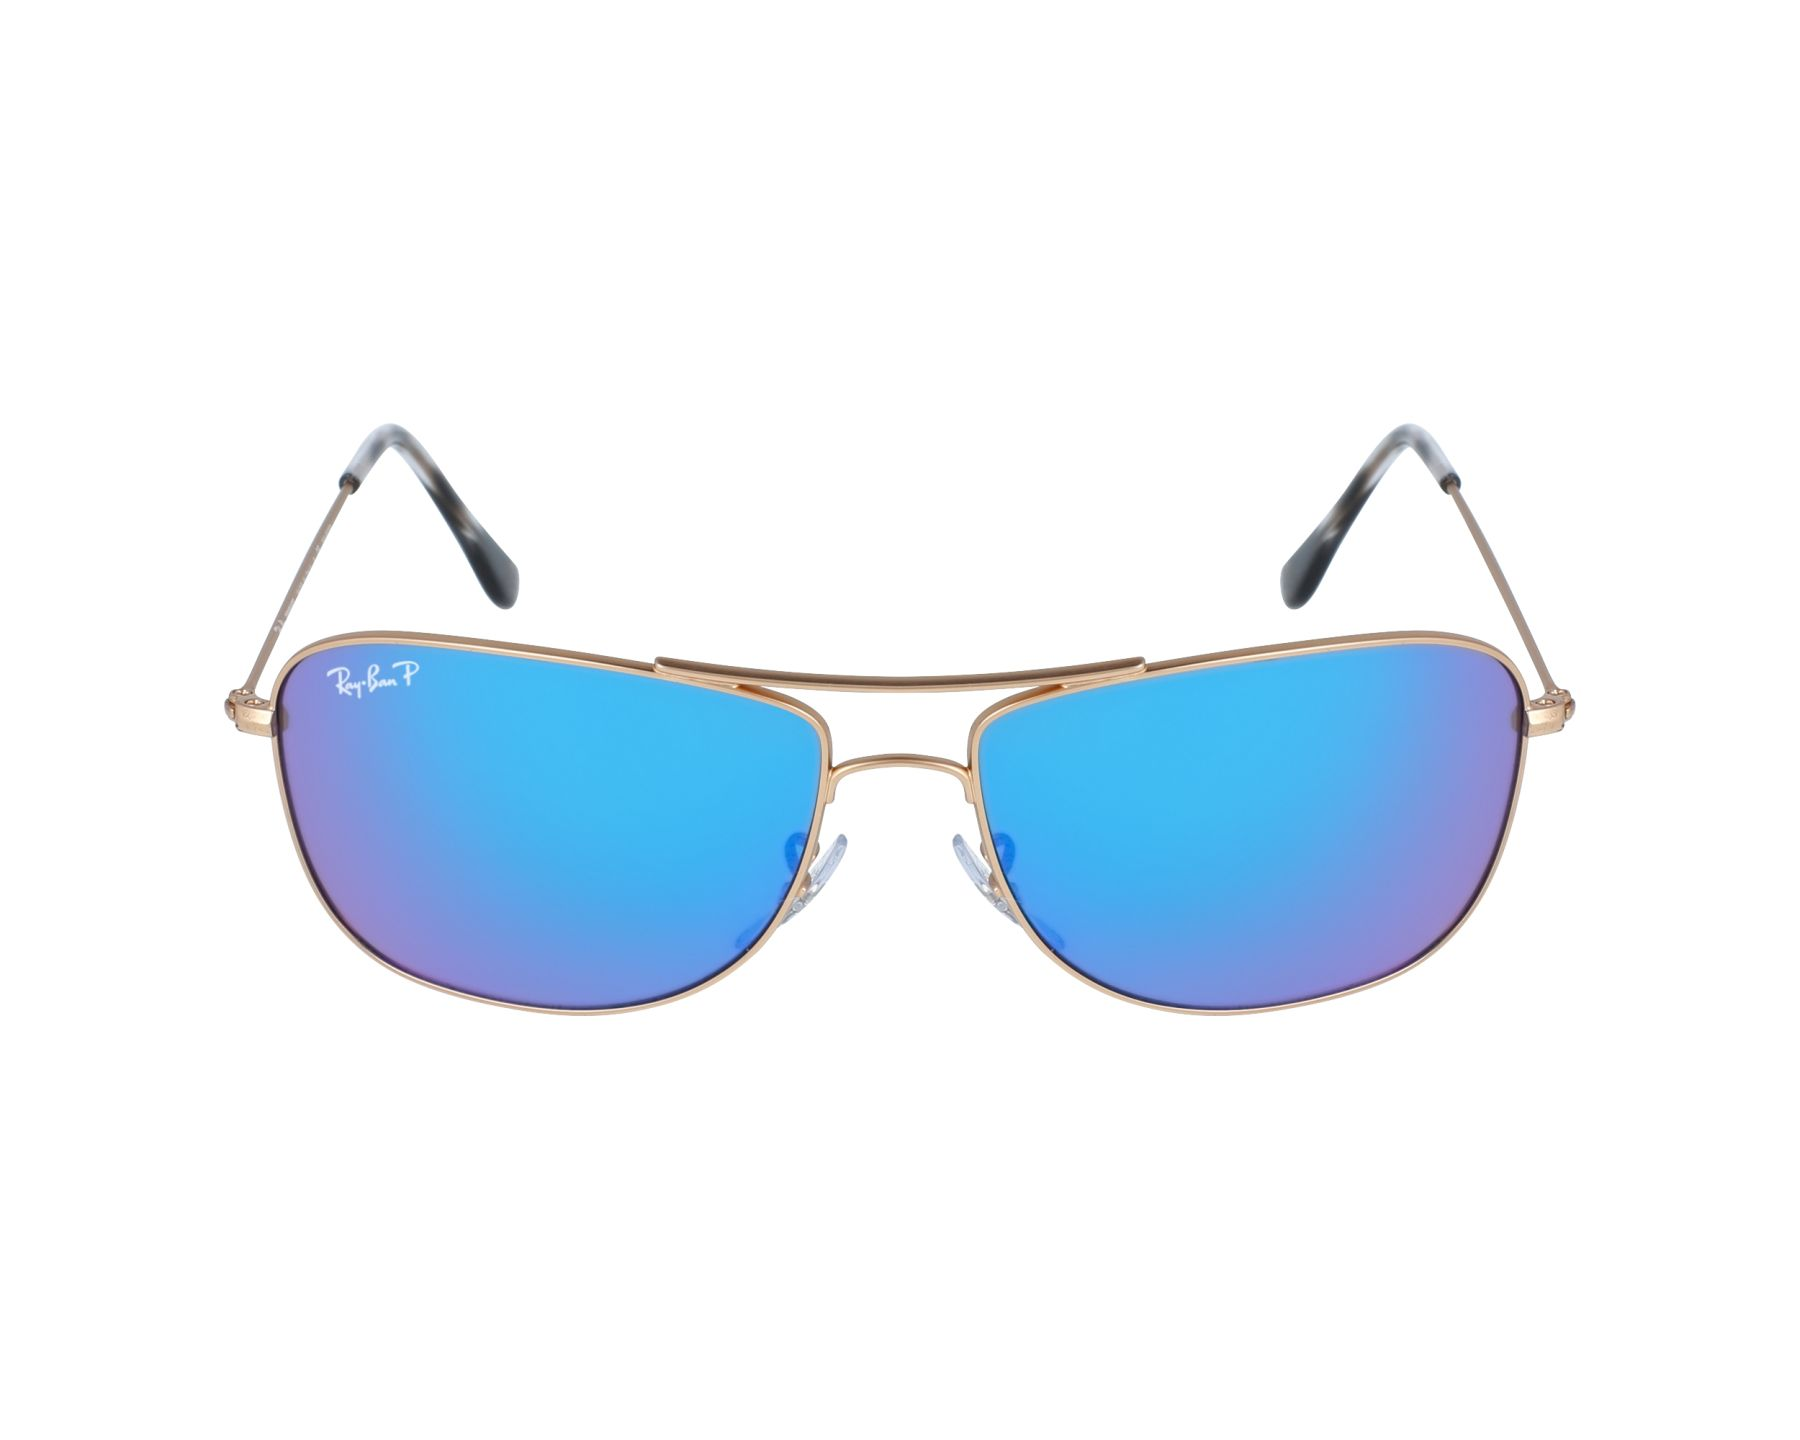 f931c85c44 Sunglasses Ray-Ban RB-3543 112 A1 59-16 Gold profile view